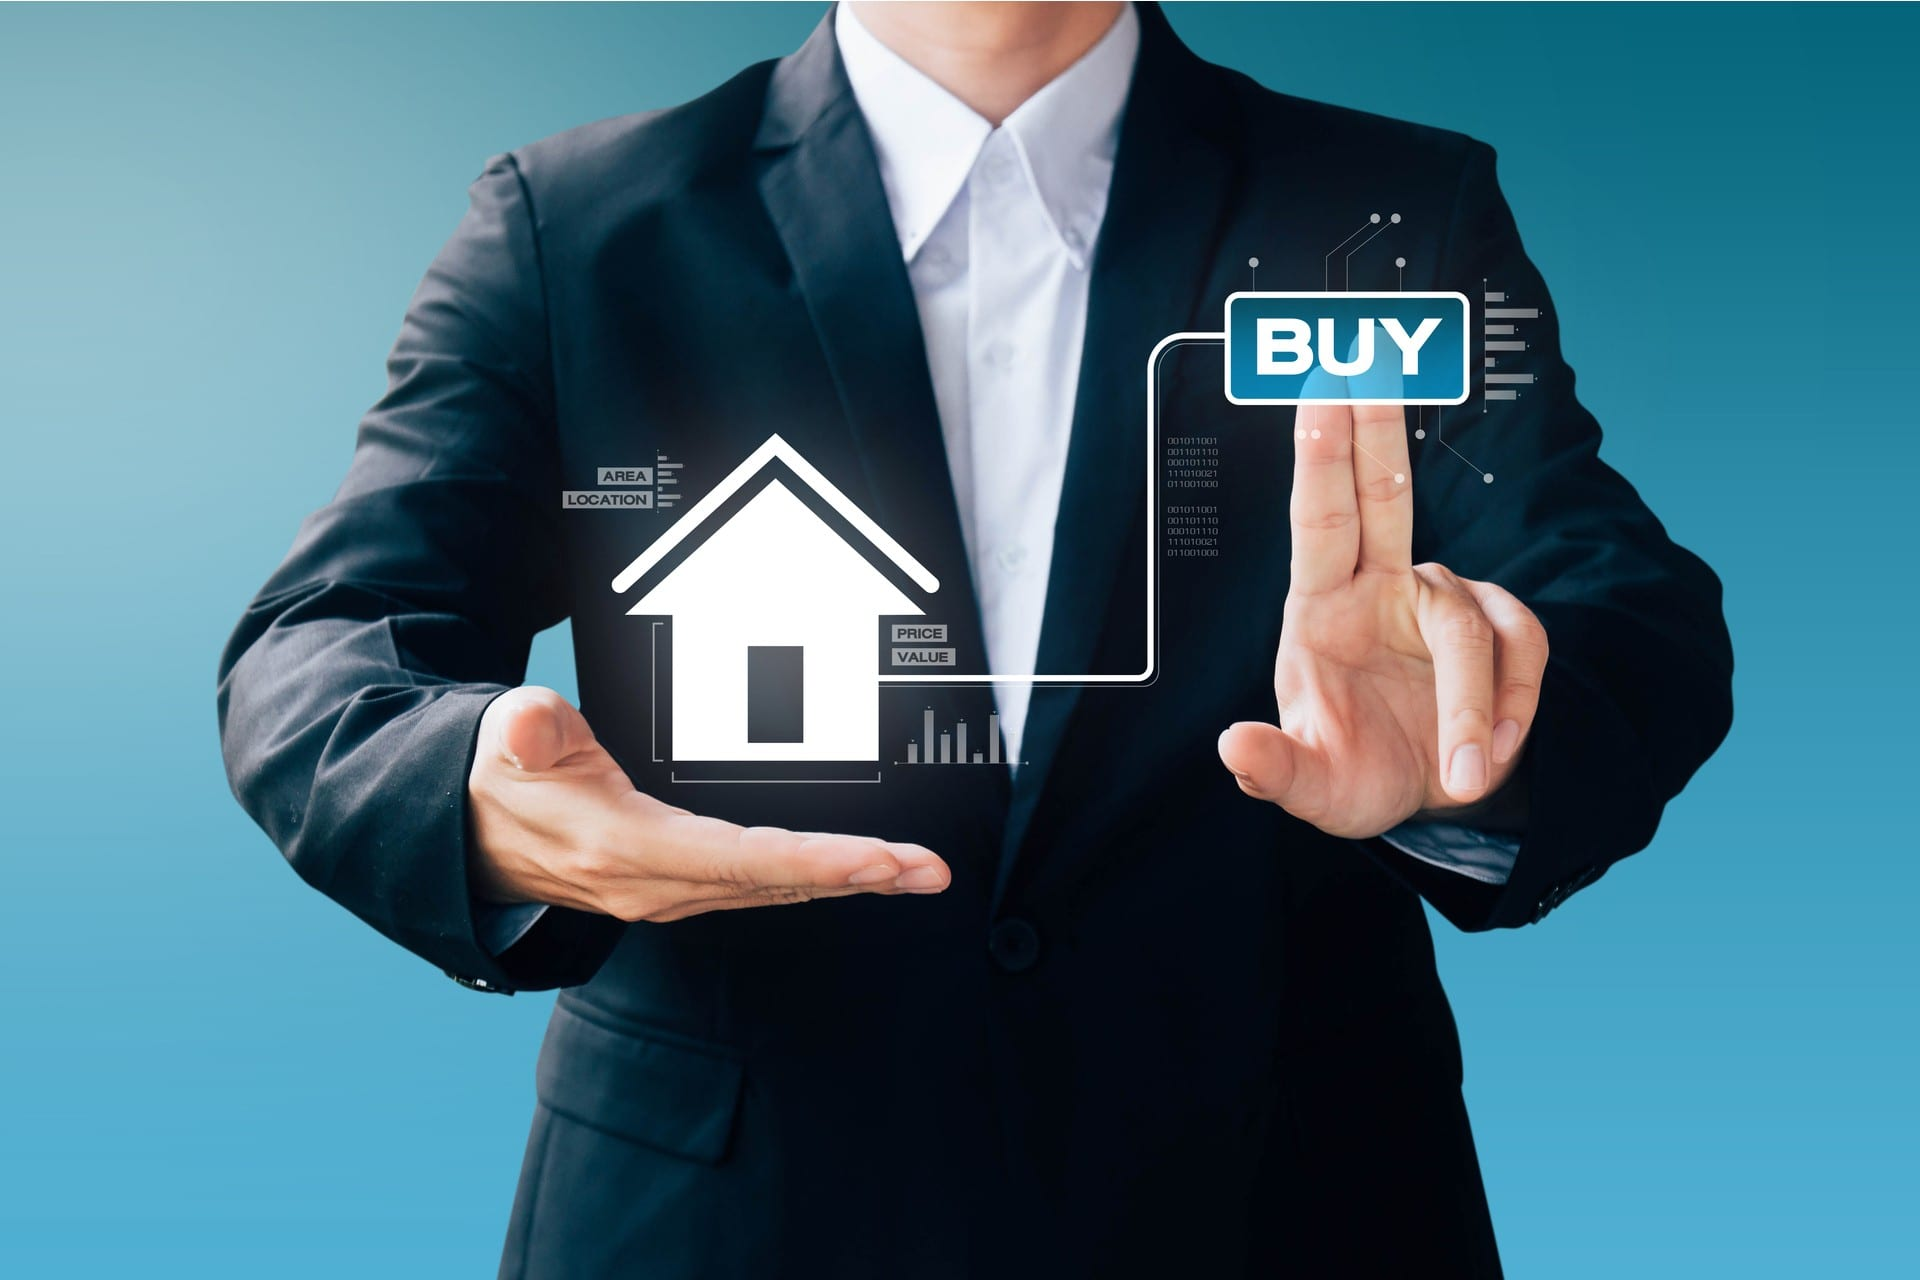 iBuyer Versus Realtor Versus For Sale By Owner (FSBO): Which Of The Three Comes Out On Top?